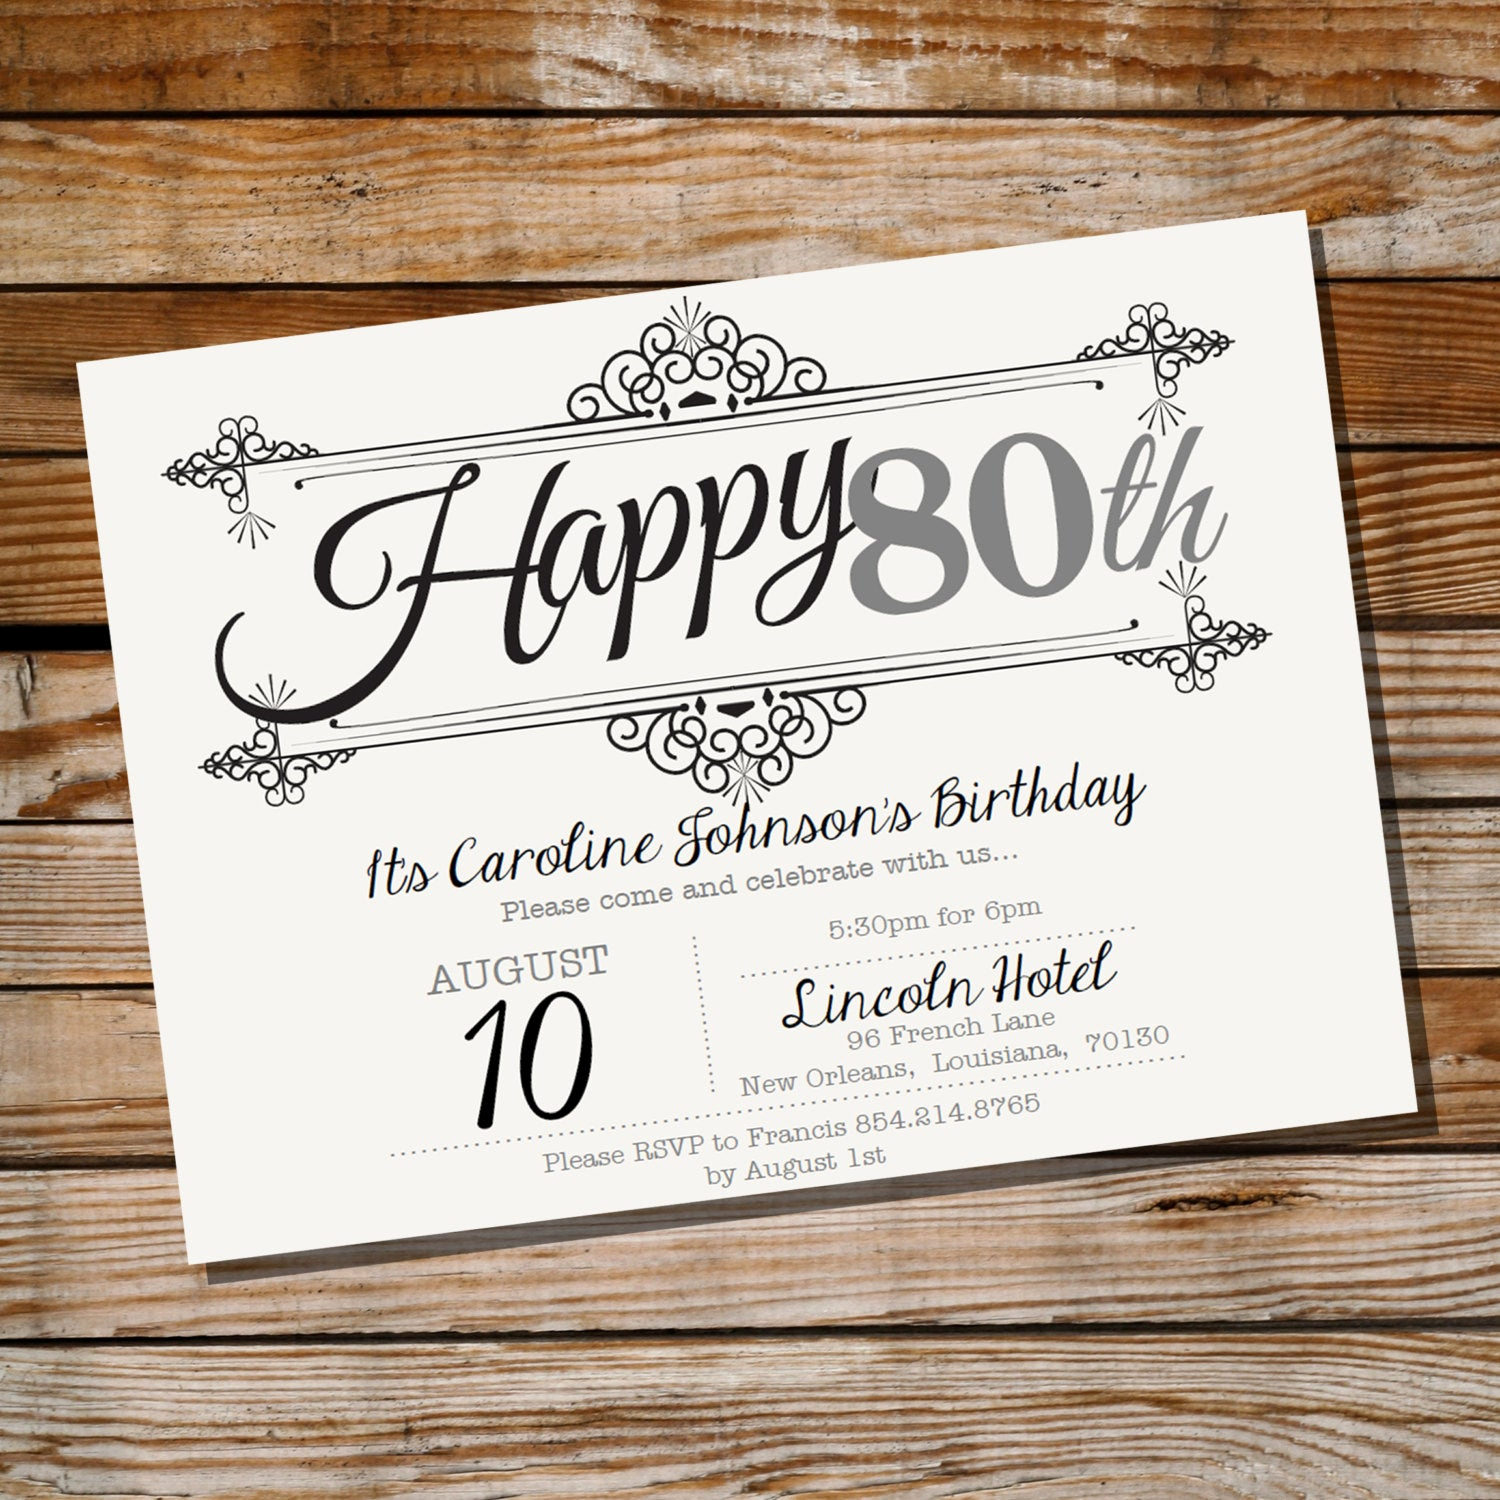 70th Birthday Invitation Wording Beautiful Vintage Frame Birthday Invitation 30th 40th 50th 60th 70th